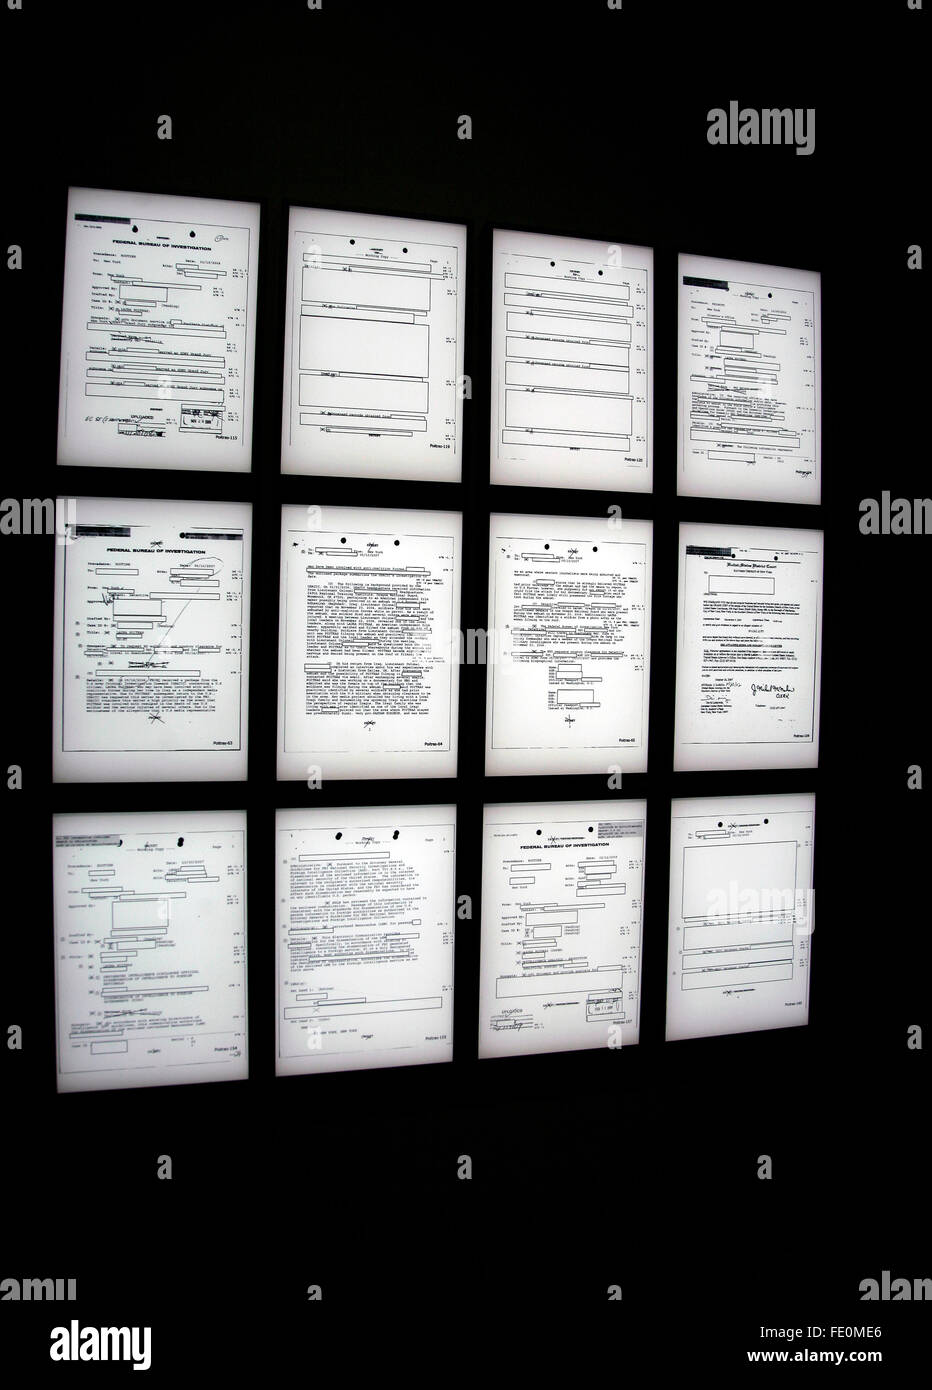 New York City, NY, USA. 3rd February, 2016. A series of panels representing FBI surveillance files on the artist - Stock Image